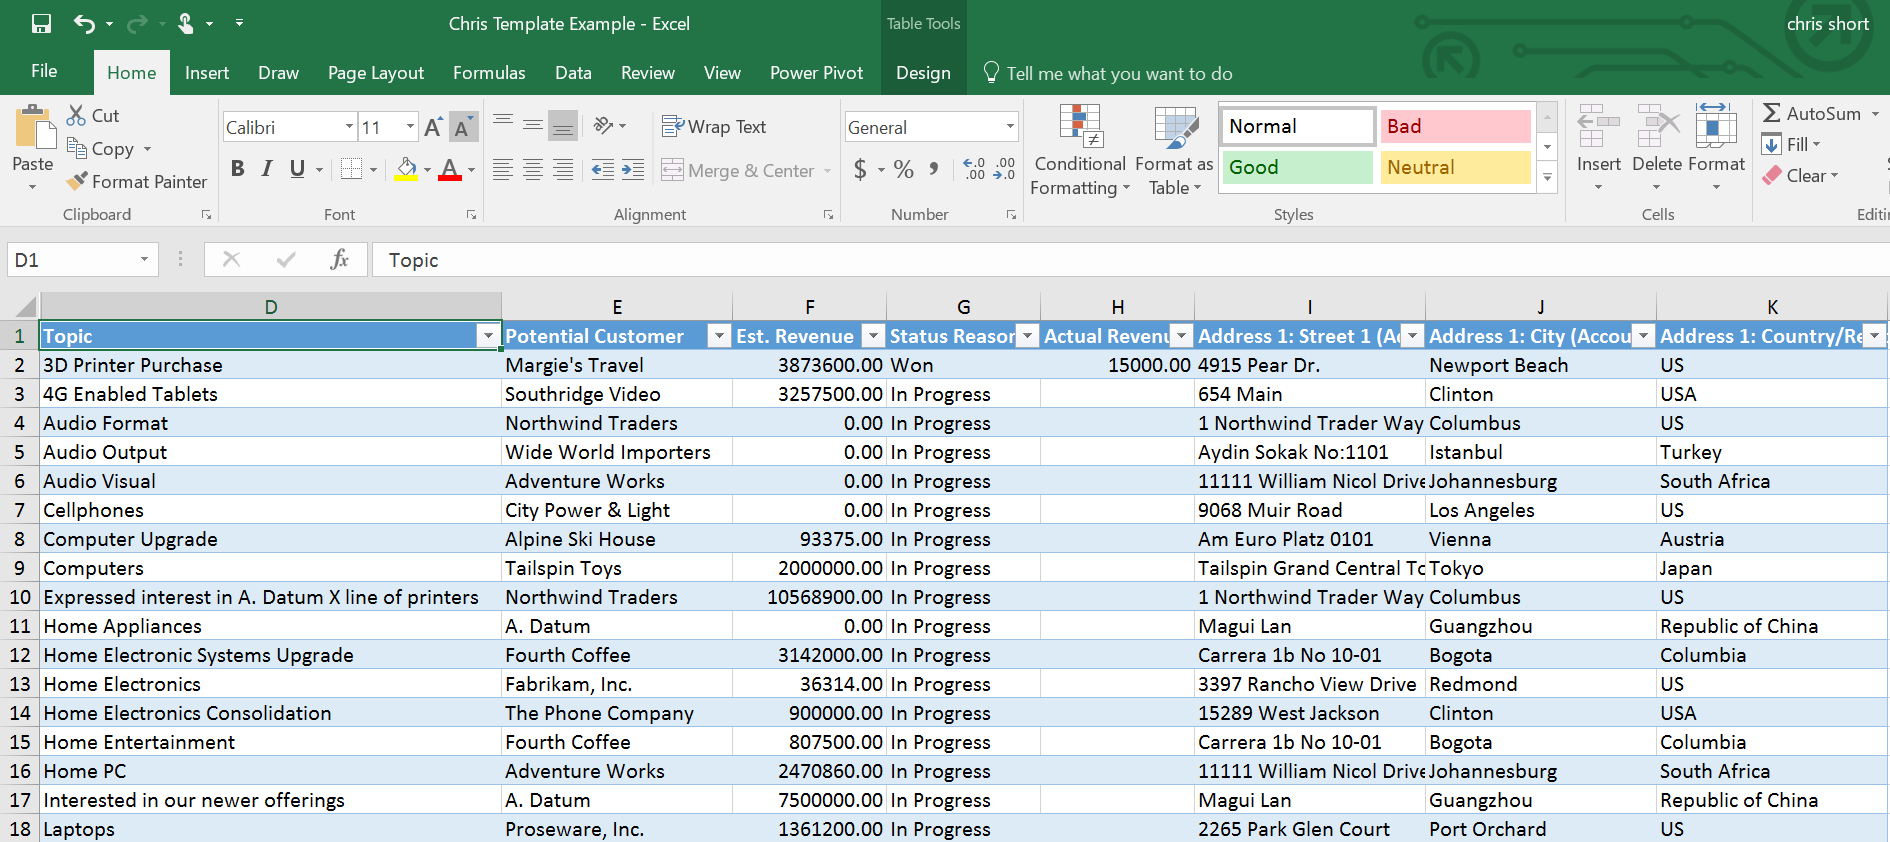 Microsoft Dynamics Crm & Microsoft Excel: Excel Templates, An For Crm Excel Template Free